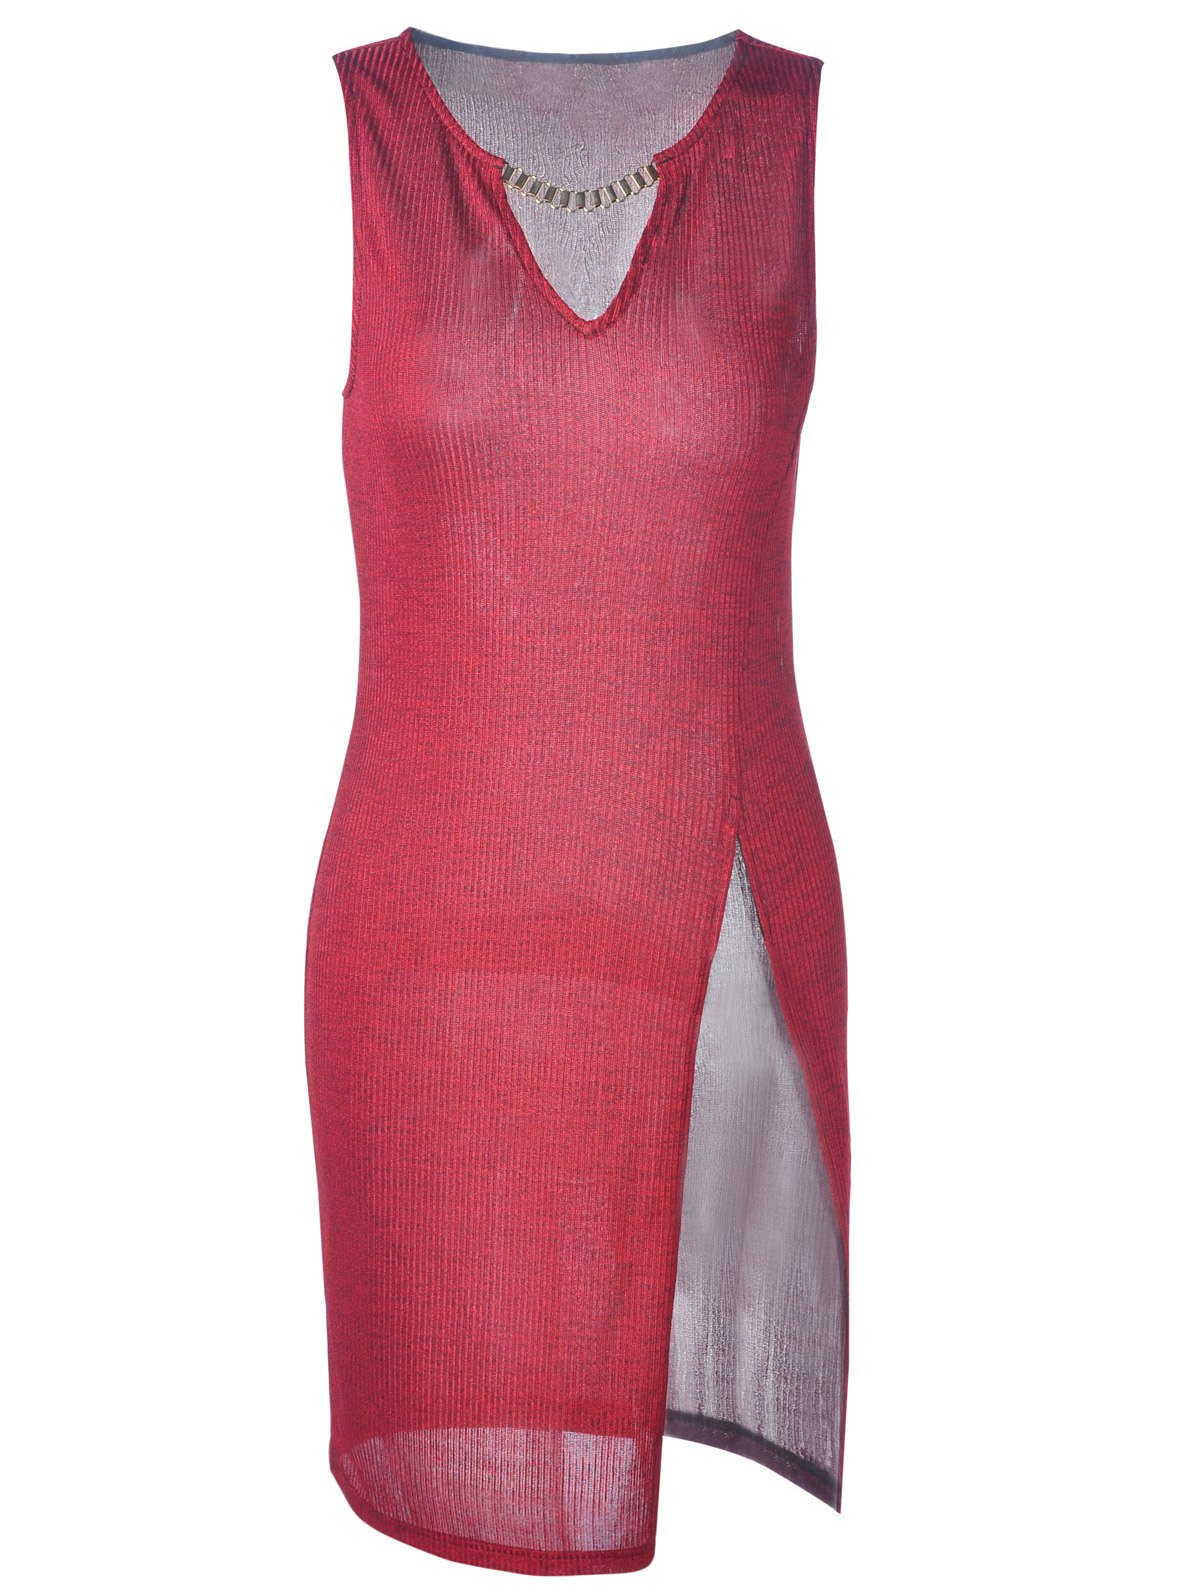 Fashionable Fitted Slit V-Neck ini Dress For Women - WINE RED M